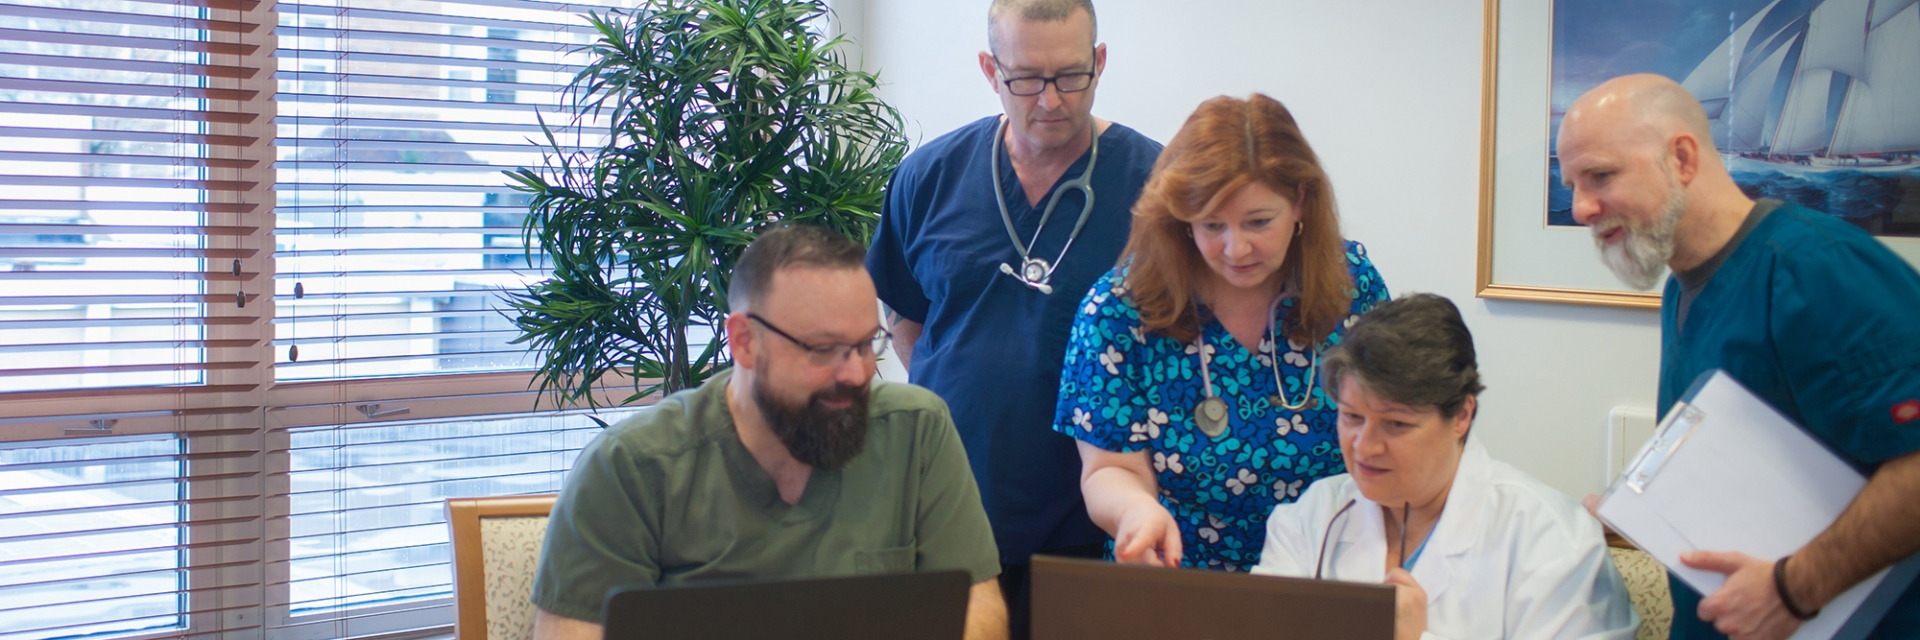 Attentive and Skilled Nurses reviewing a computer screen